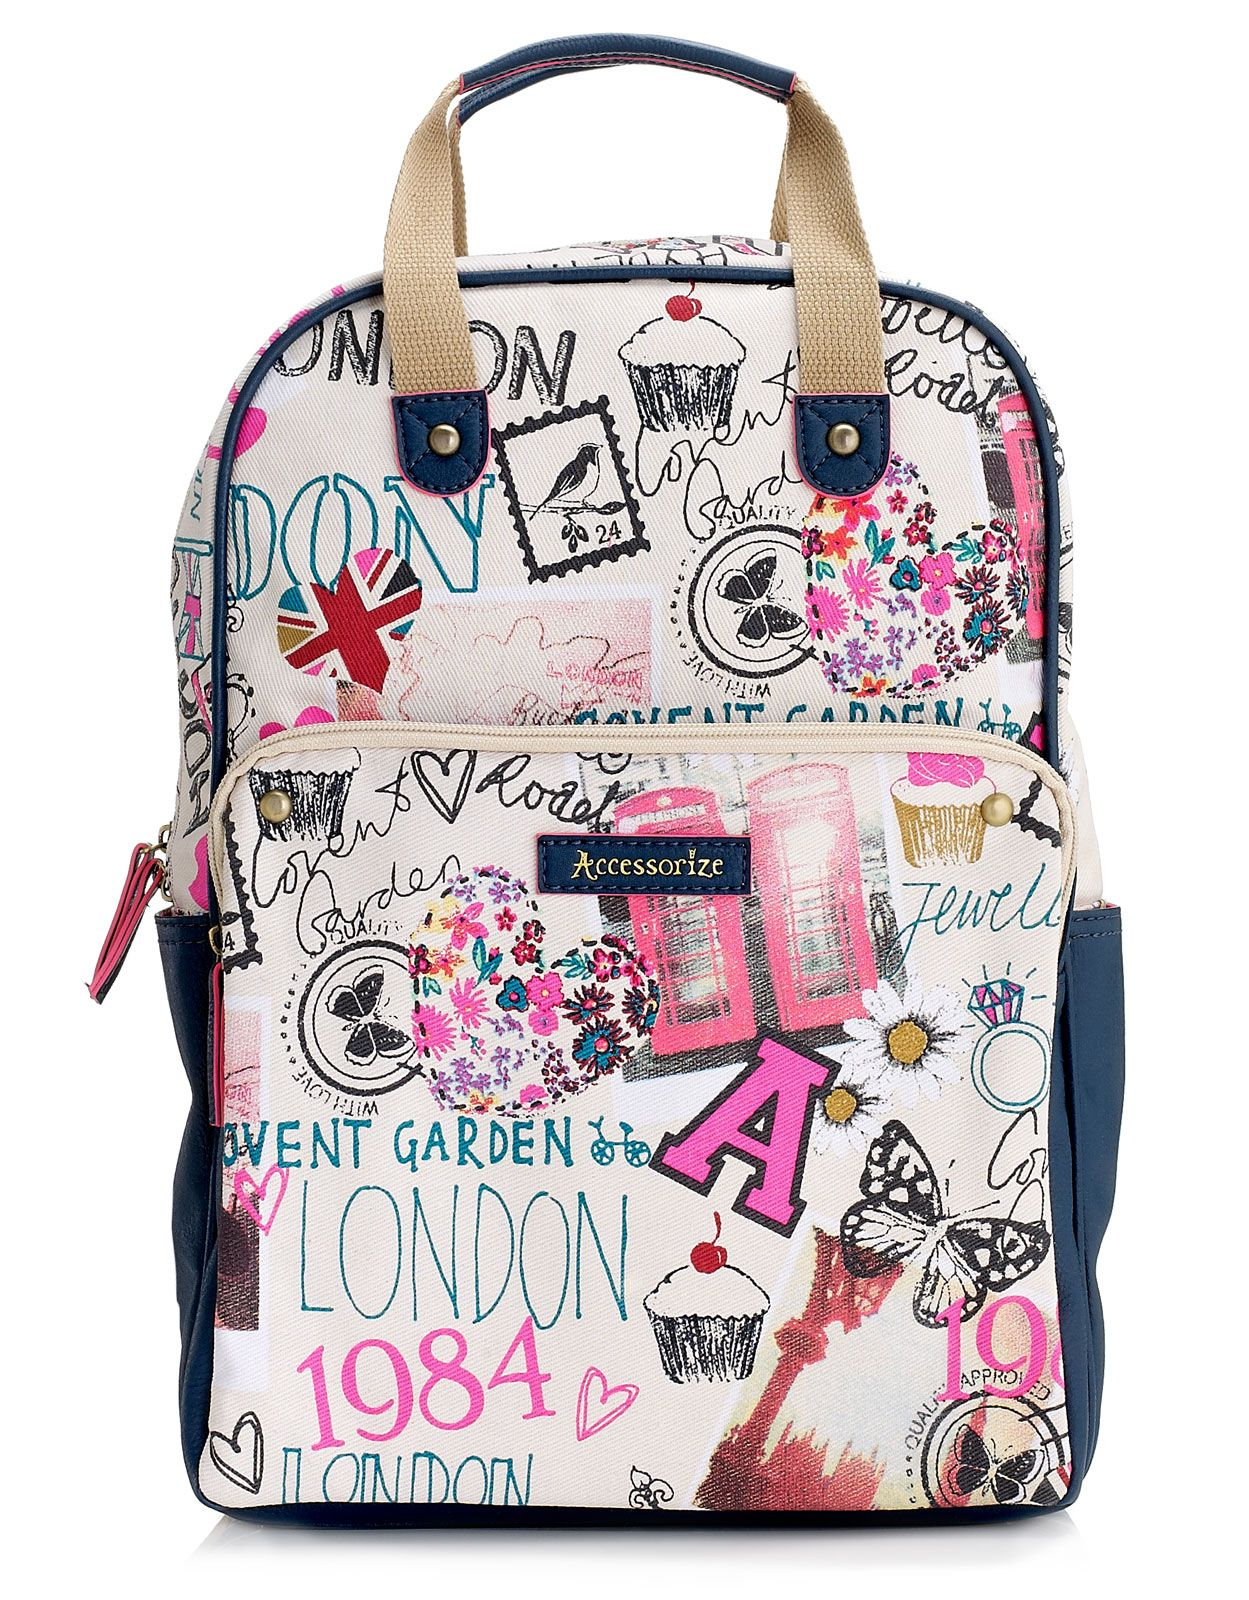 London Sights Square Rucksack | Navy | Accessorize | Top